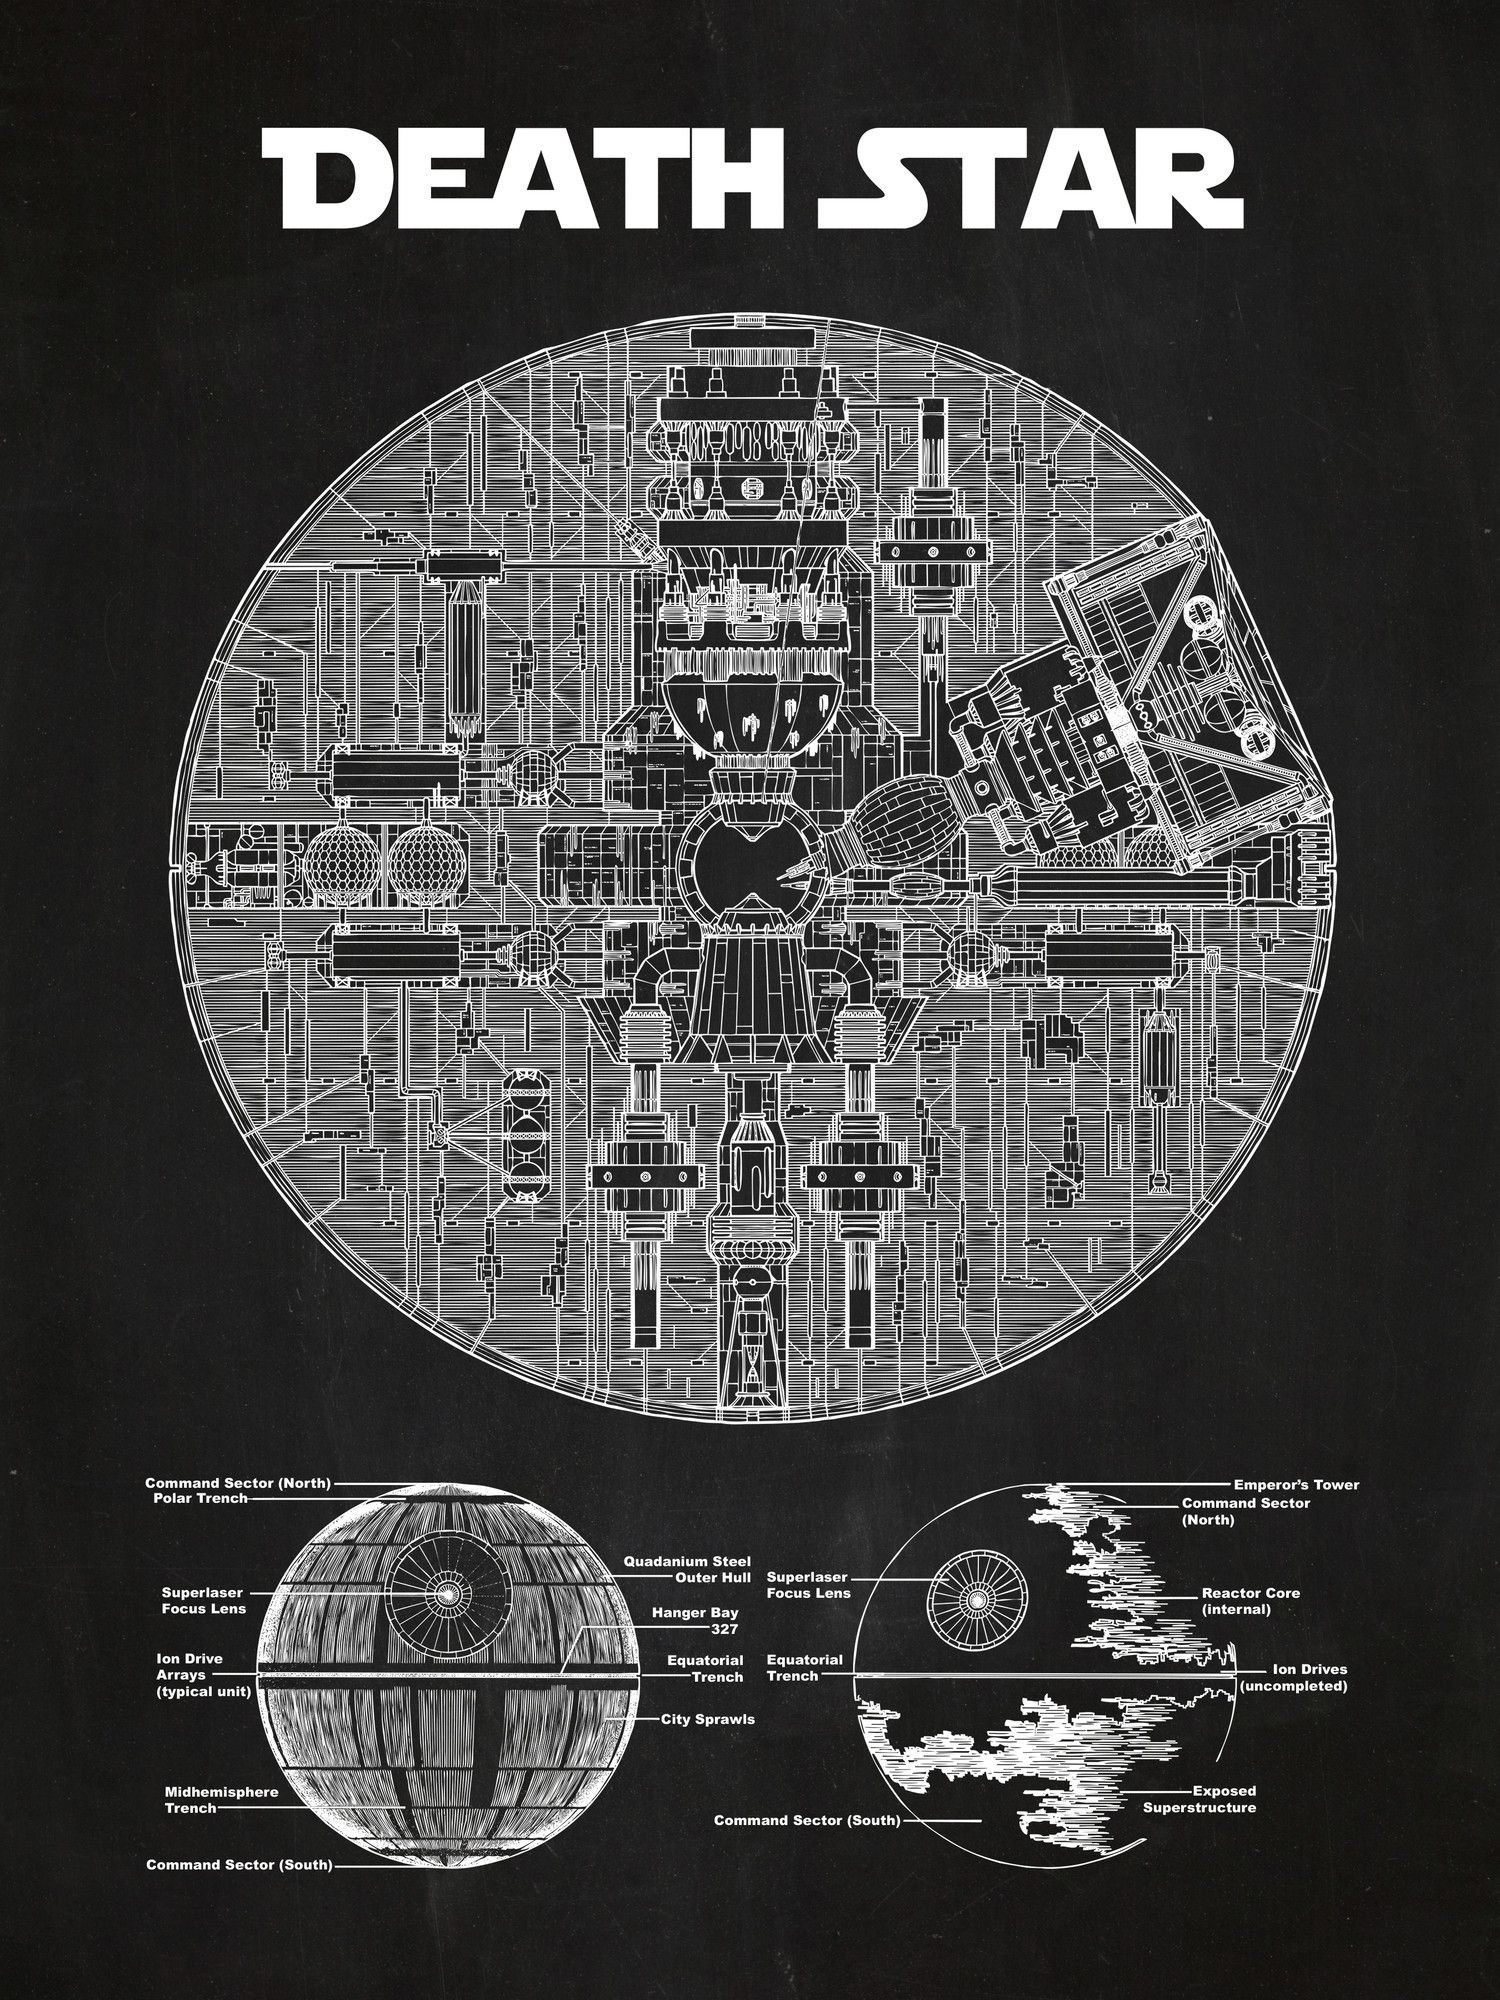 Star wars death star blueprint graphic art poster in chalkboard star wars death star blueprint graphic art poster in chalkboardwhite ink malvernweather